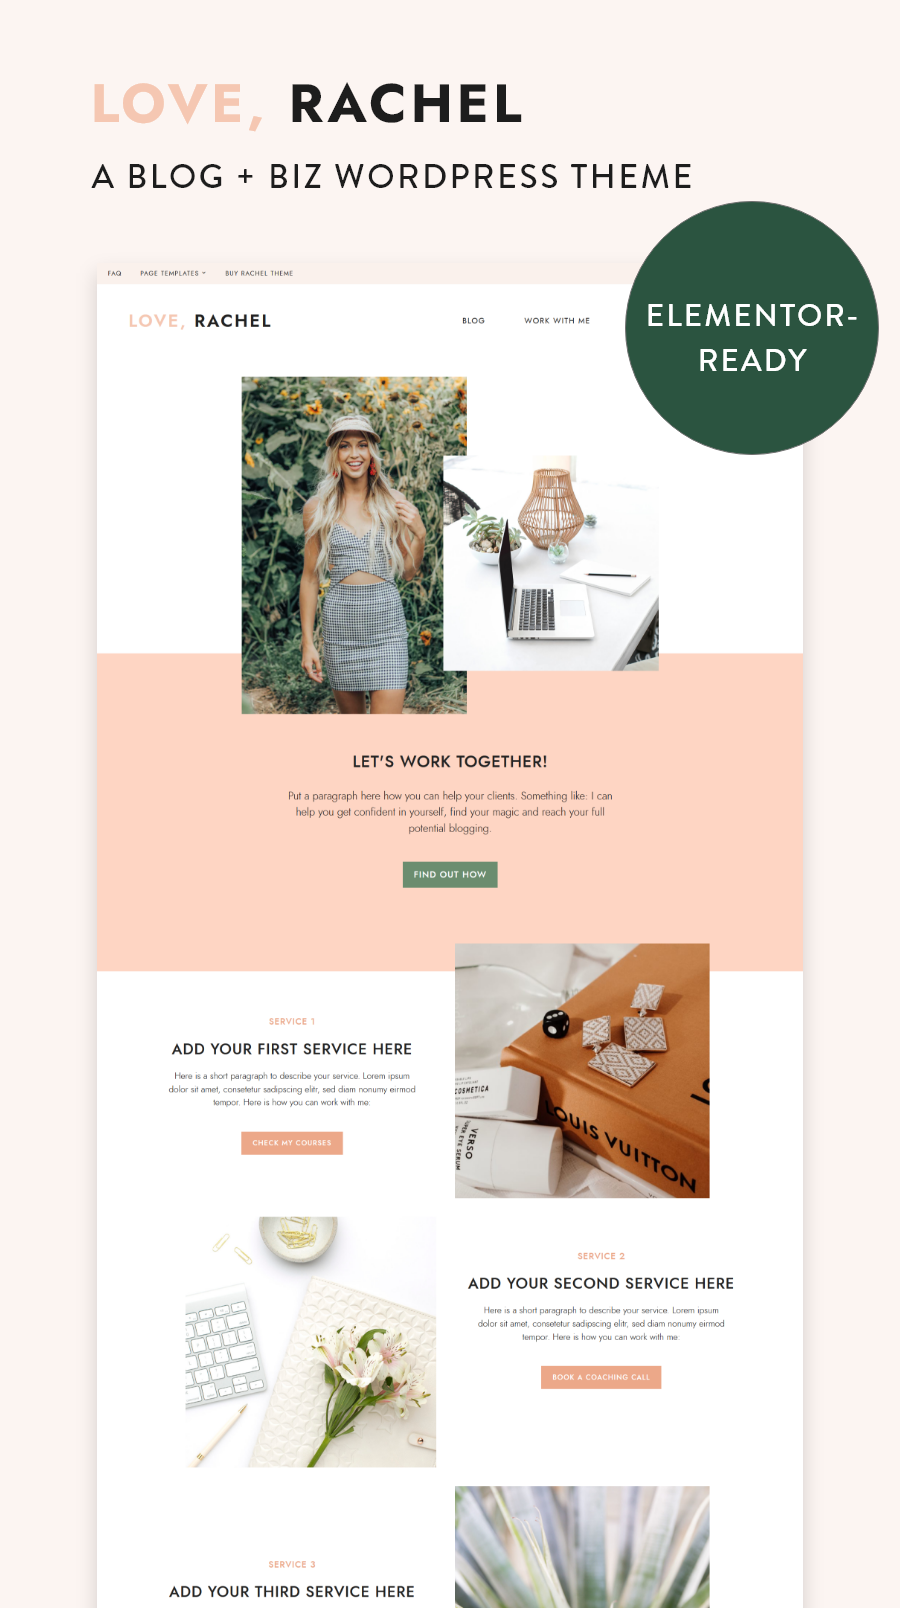 Rachel WordPress Theme - Blog & Biz Theme with Ready-to-Use Elementor Templates | My Boutique Themes